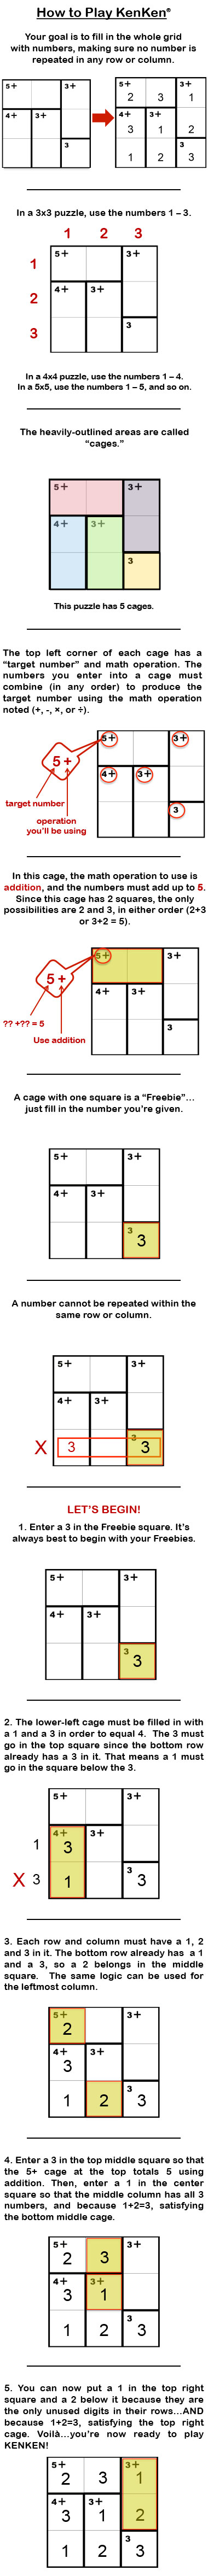 Kenken Puzzle Rules - How To Play This Amazing Puzzle & Brain Teaser! - Printable Kenken Puzzles 4X4